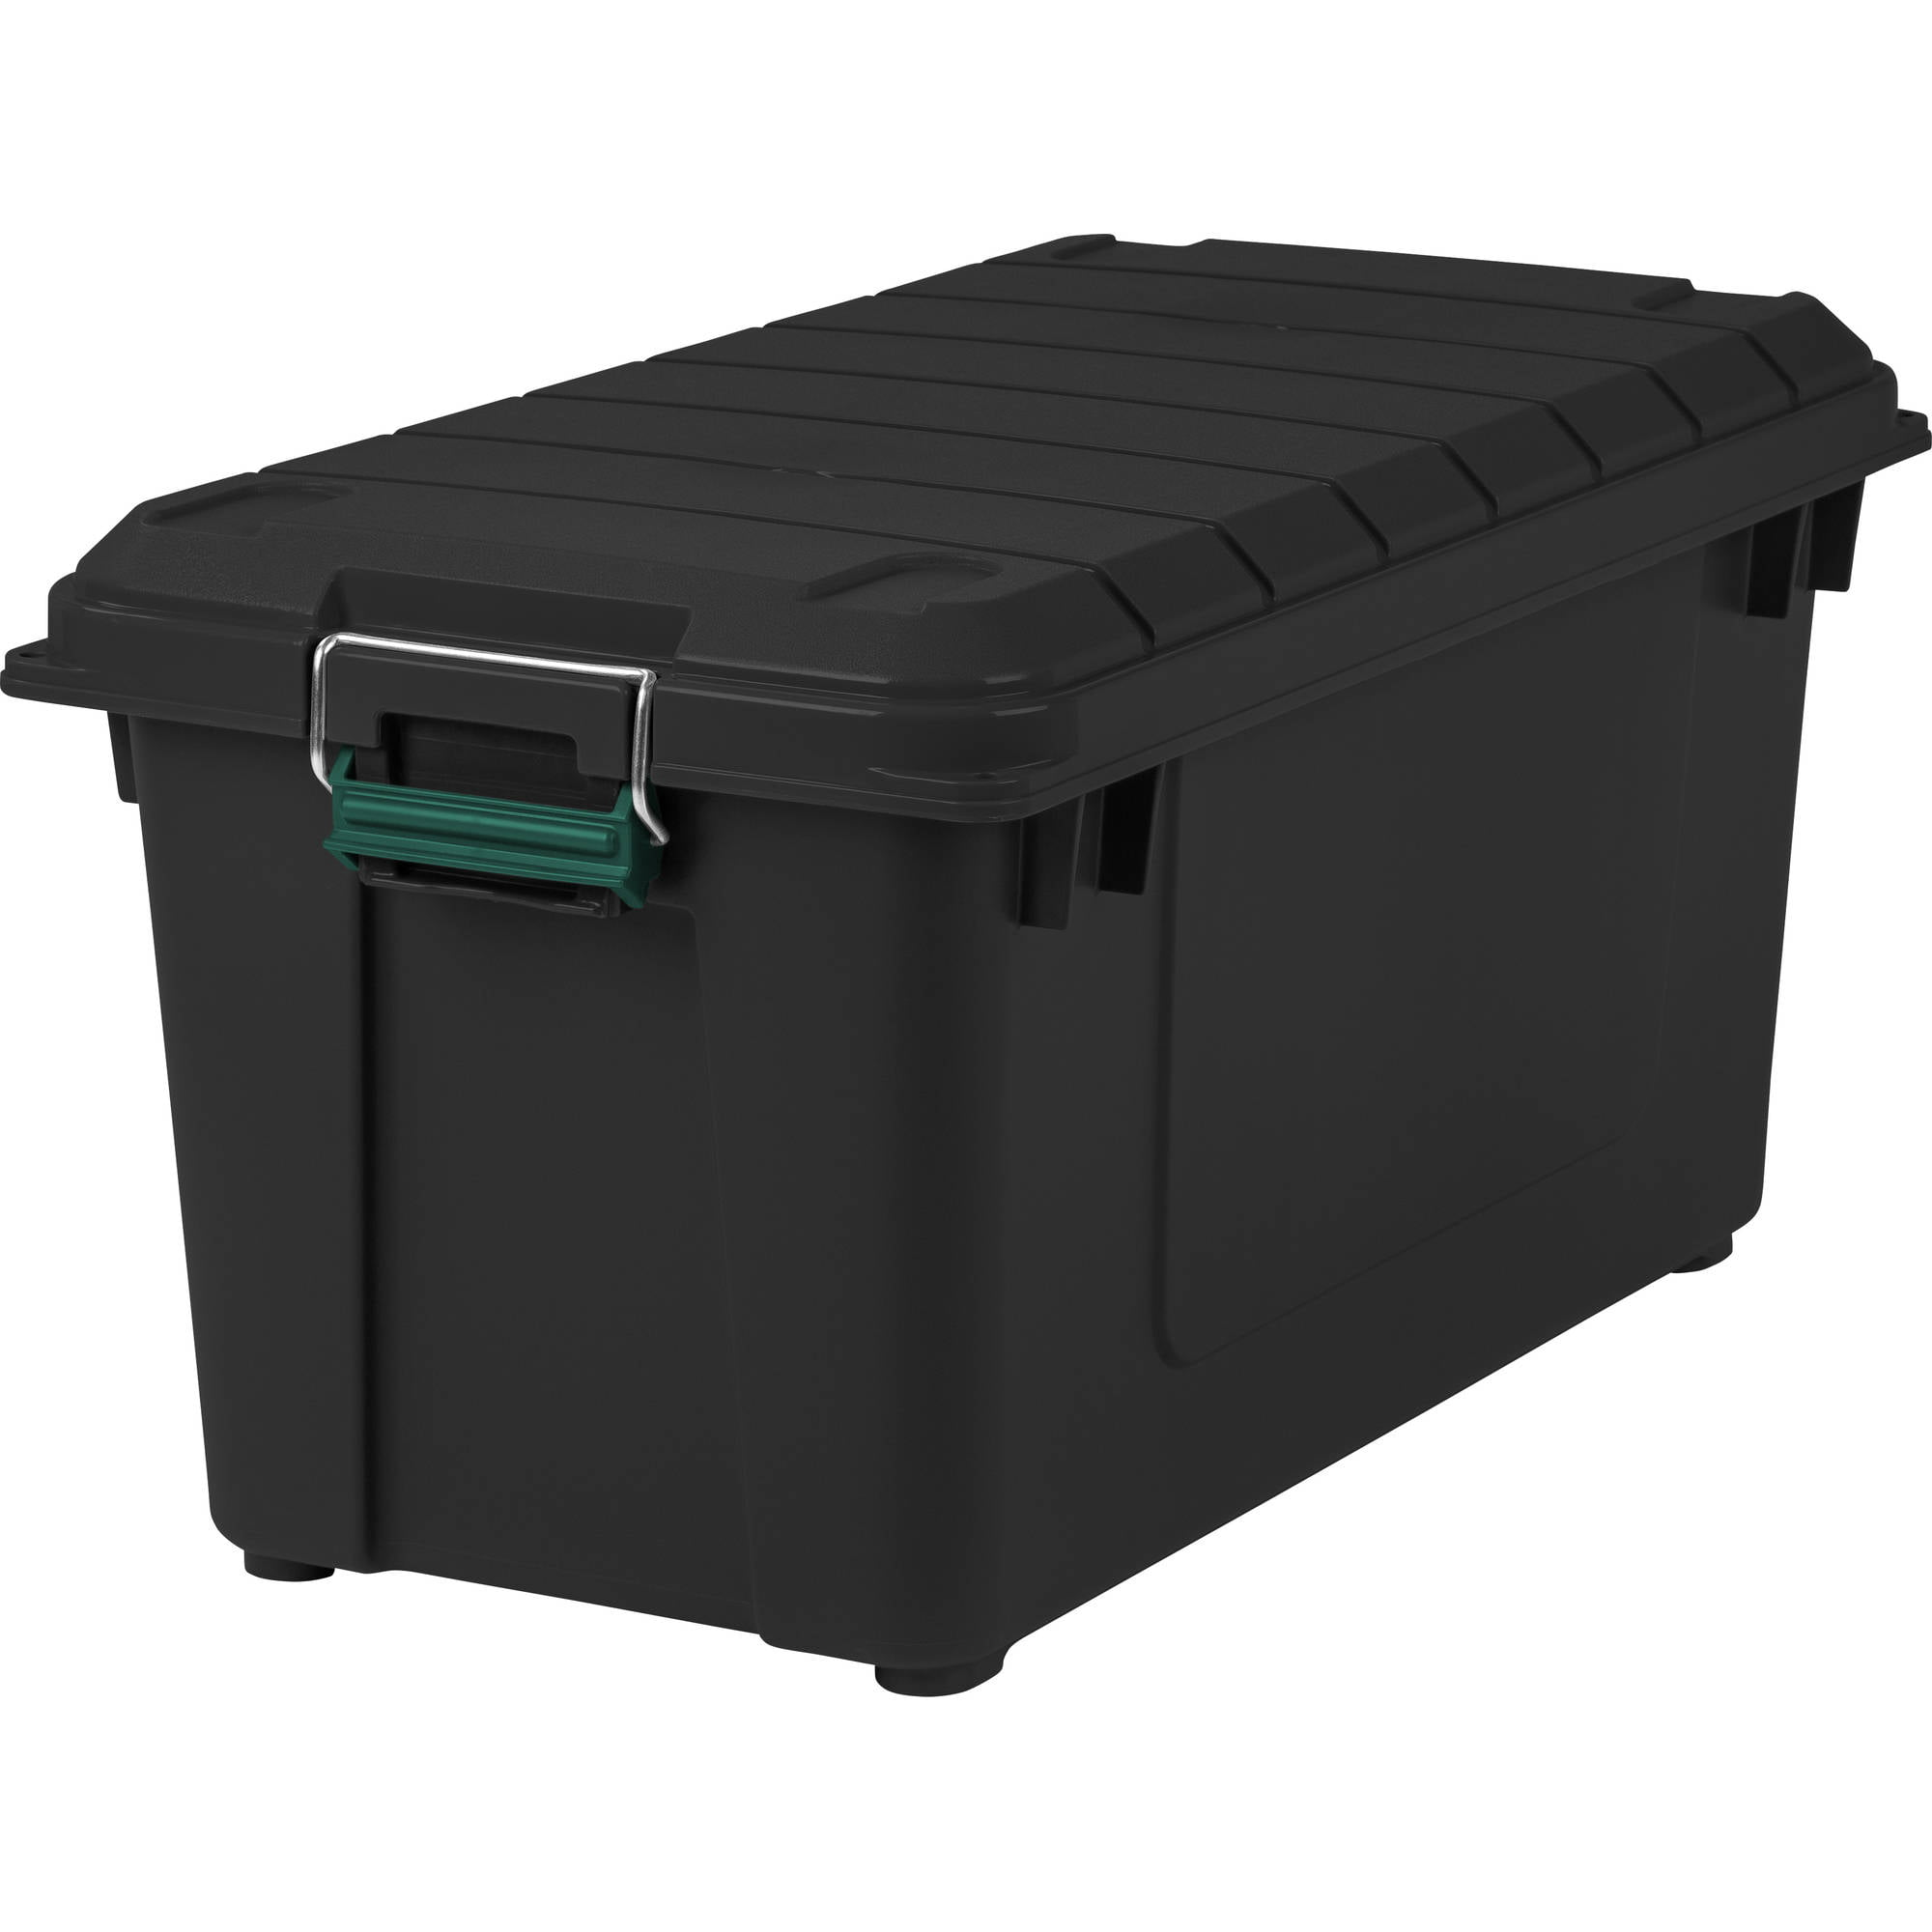 173 Qt. 43.25 Gal. Remington Store-It-All Tote with Handle, Black by IRIS USA, Inc.